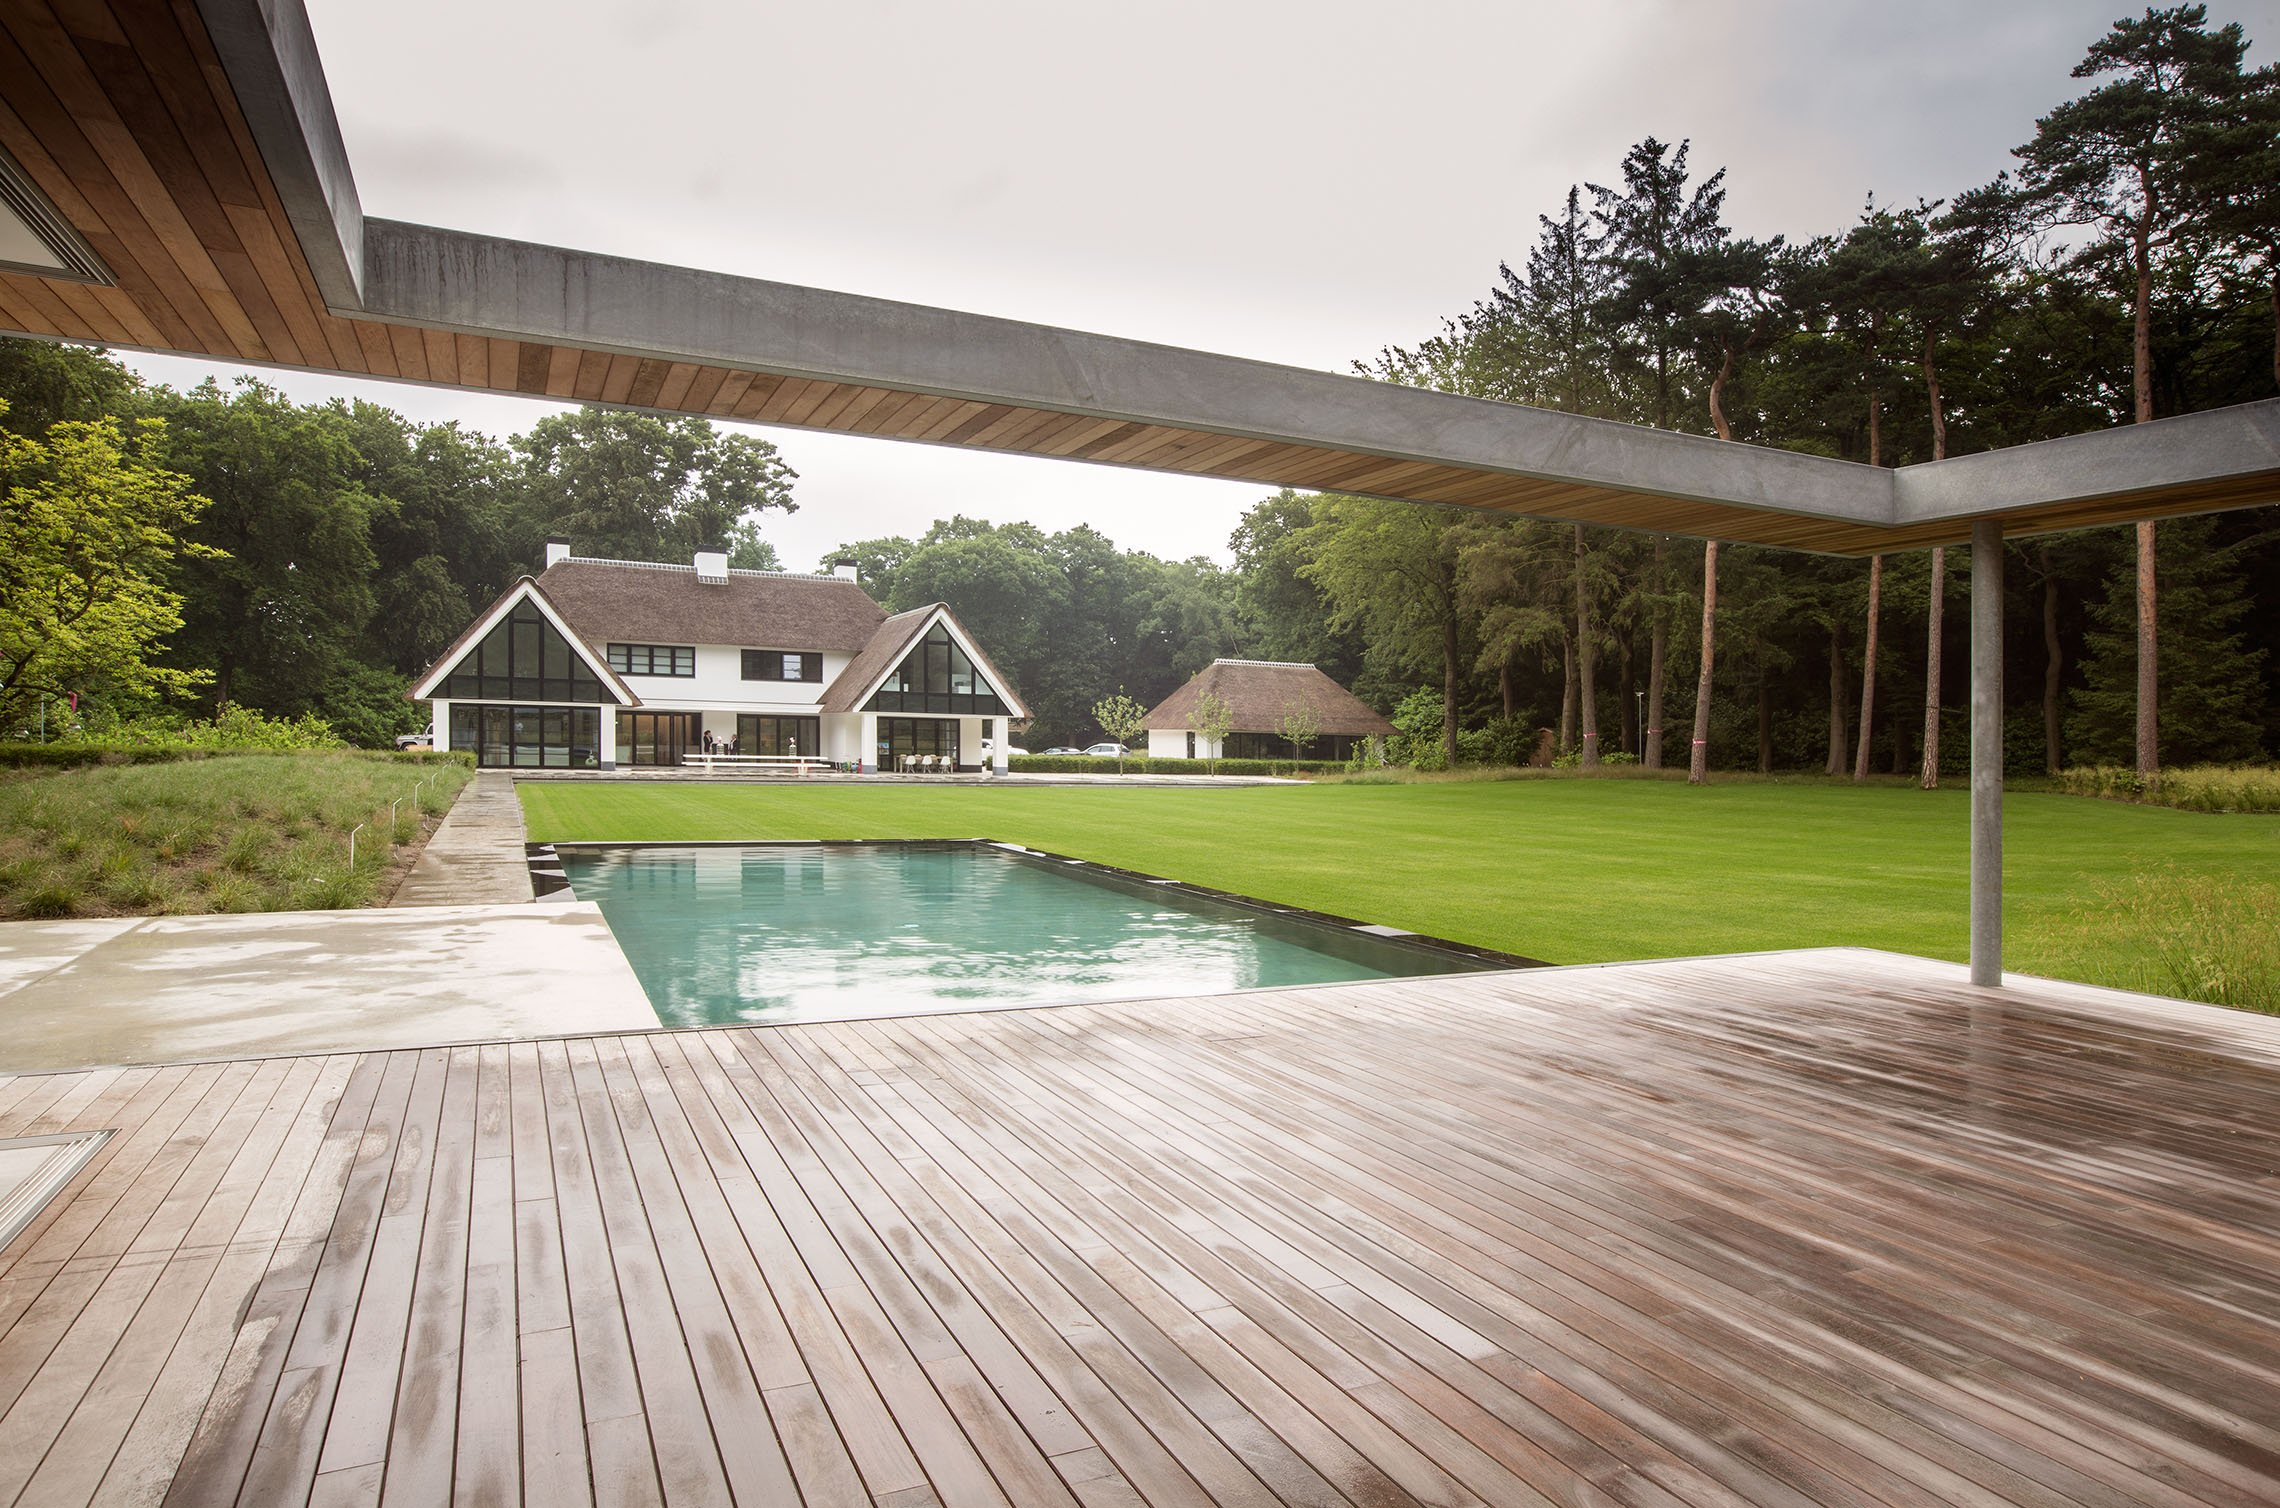 3_Andrew-van-Egmond_poolhouse_Minimalstic-garden_B